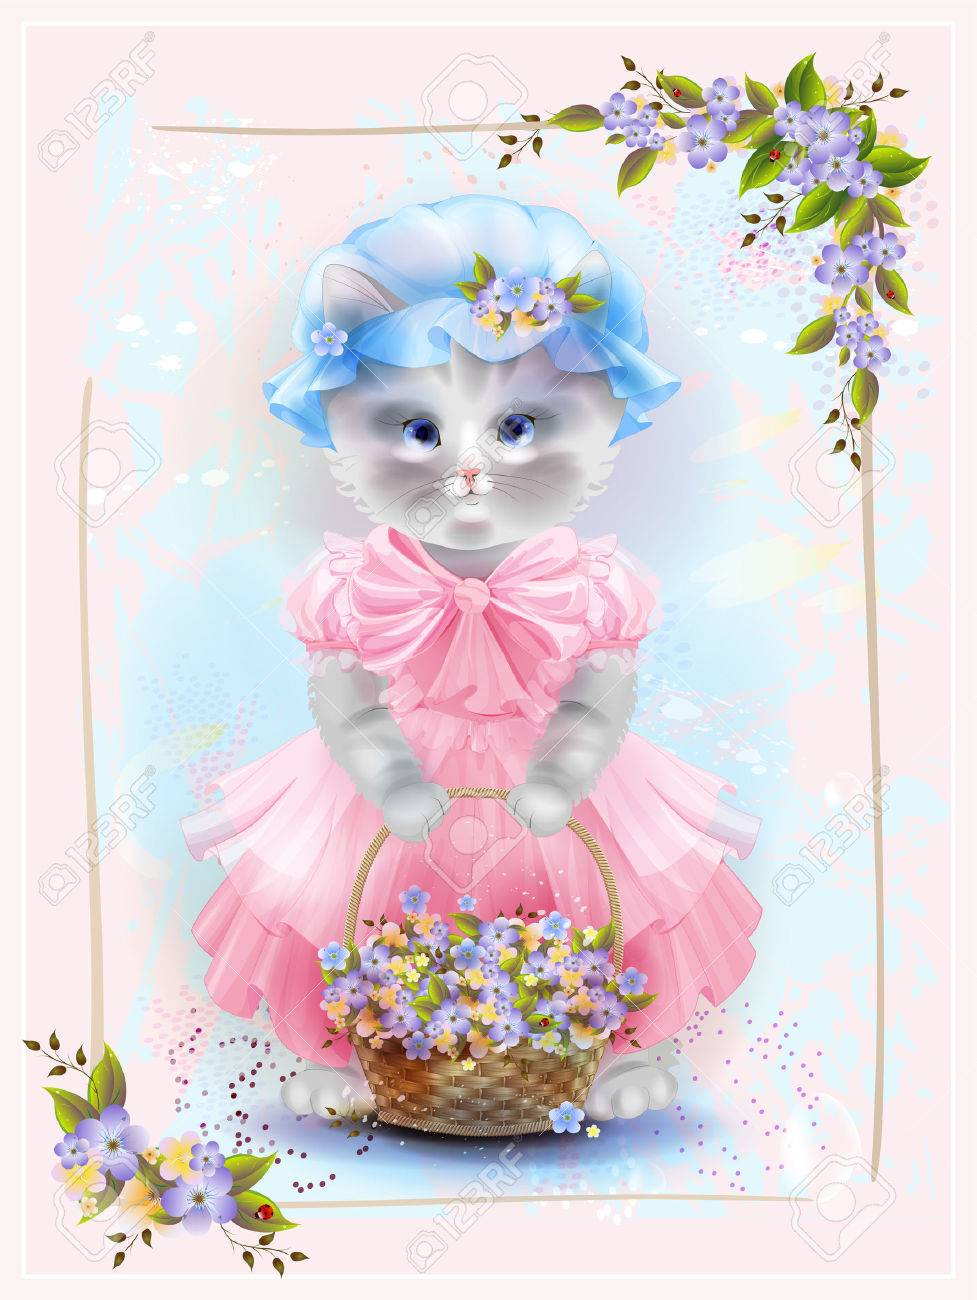 The Portrait Of Full VioletsBirthday Vintage With Basket Cat AqS4RjcL35